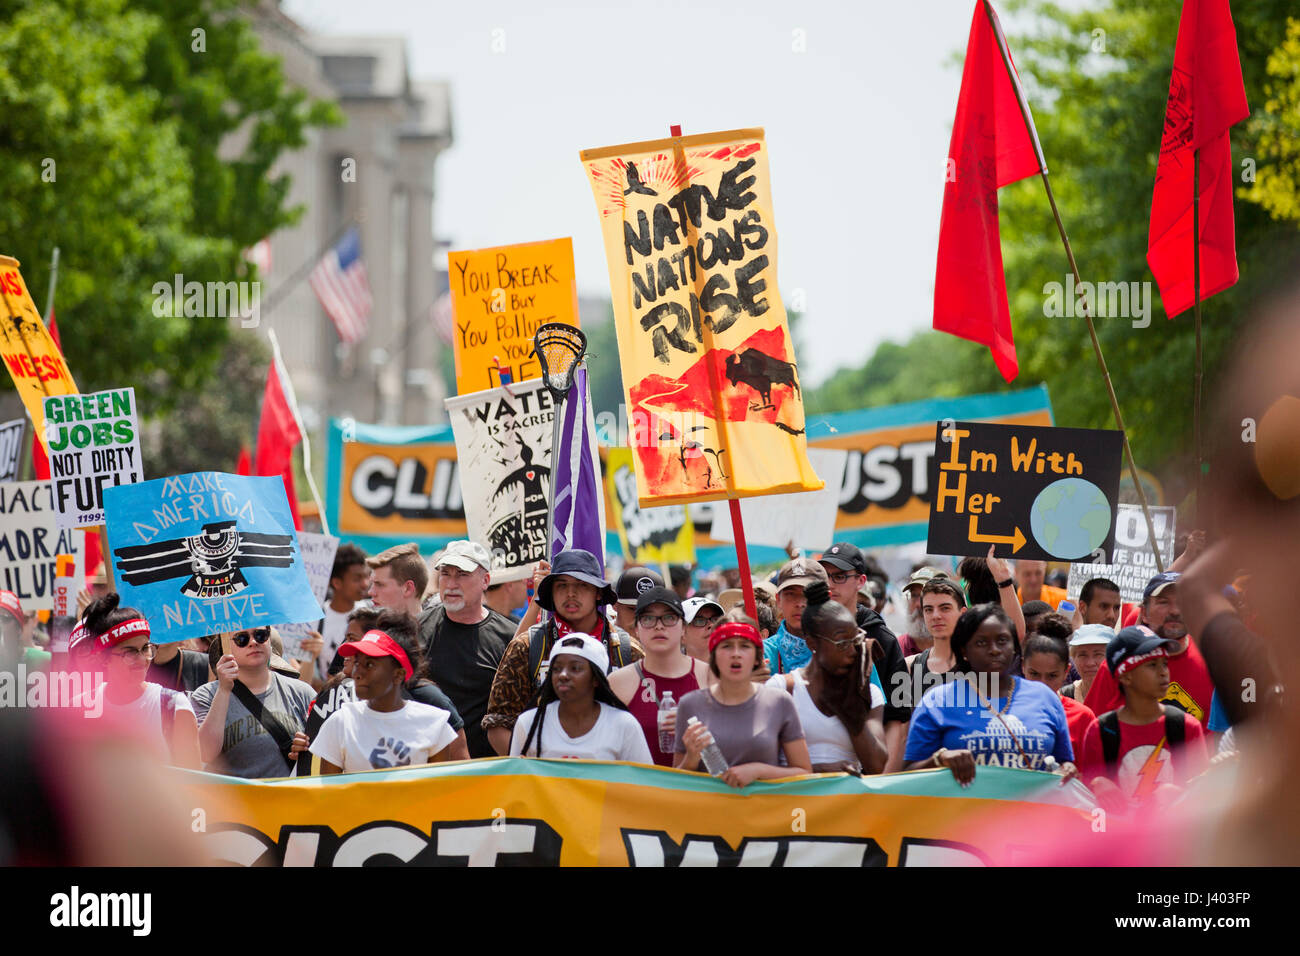 Native Americans protesting during People's Climate March - April 29, 2017, Washington, DC USA Stock Photo